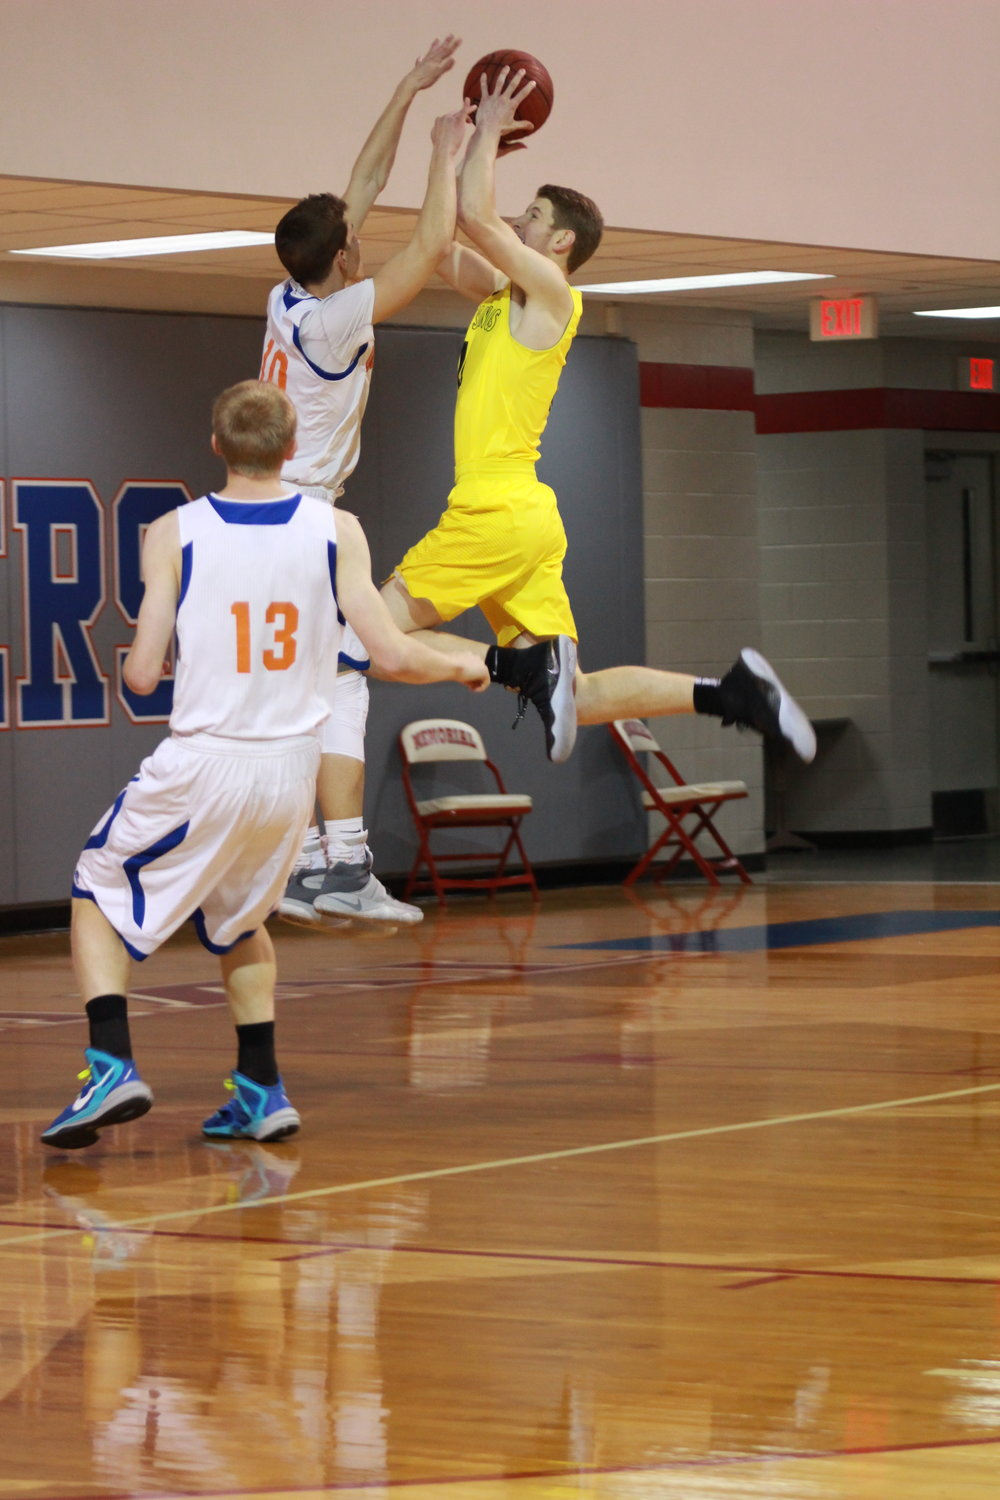 Colt Savage goes for a big jump shot in a game against Wichita. (Photo: Morgan Miller).